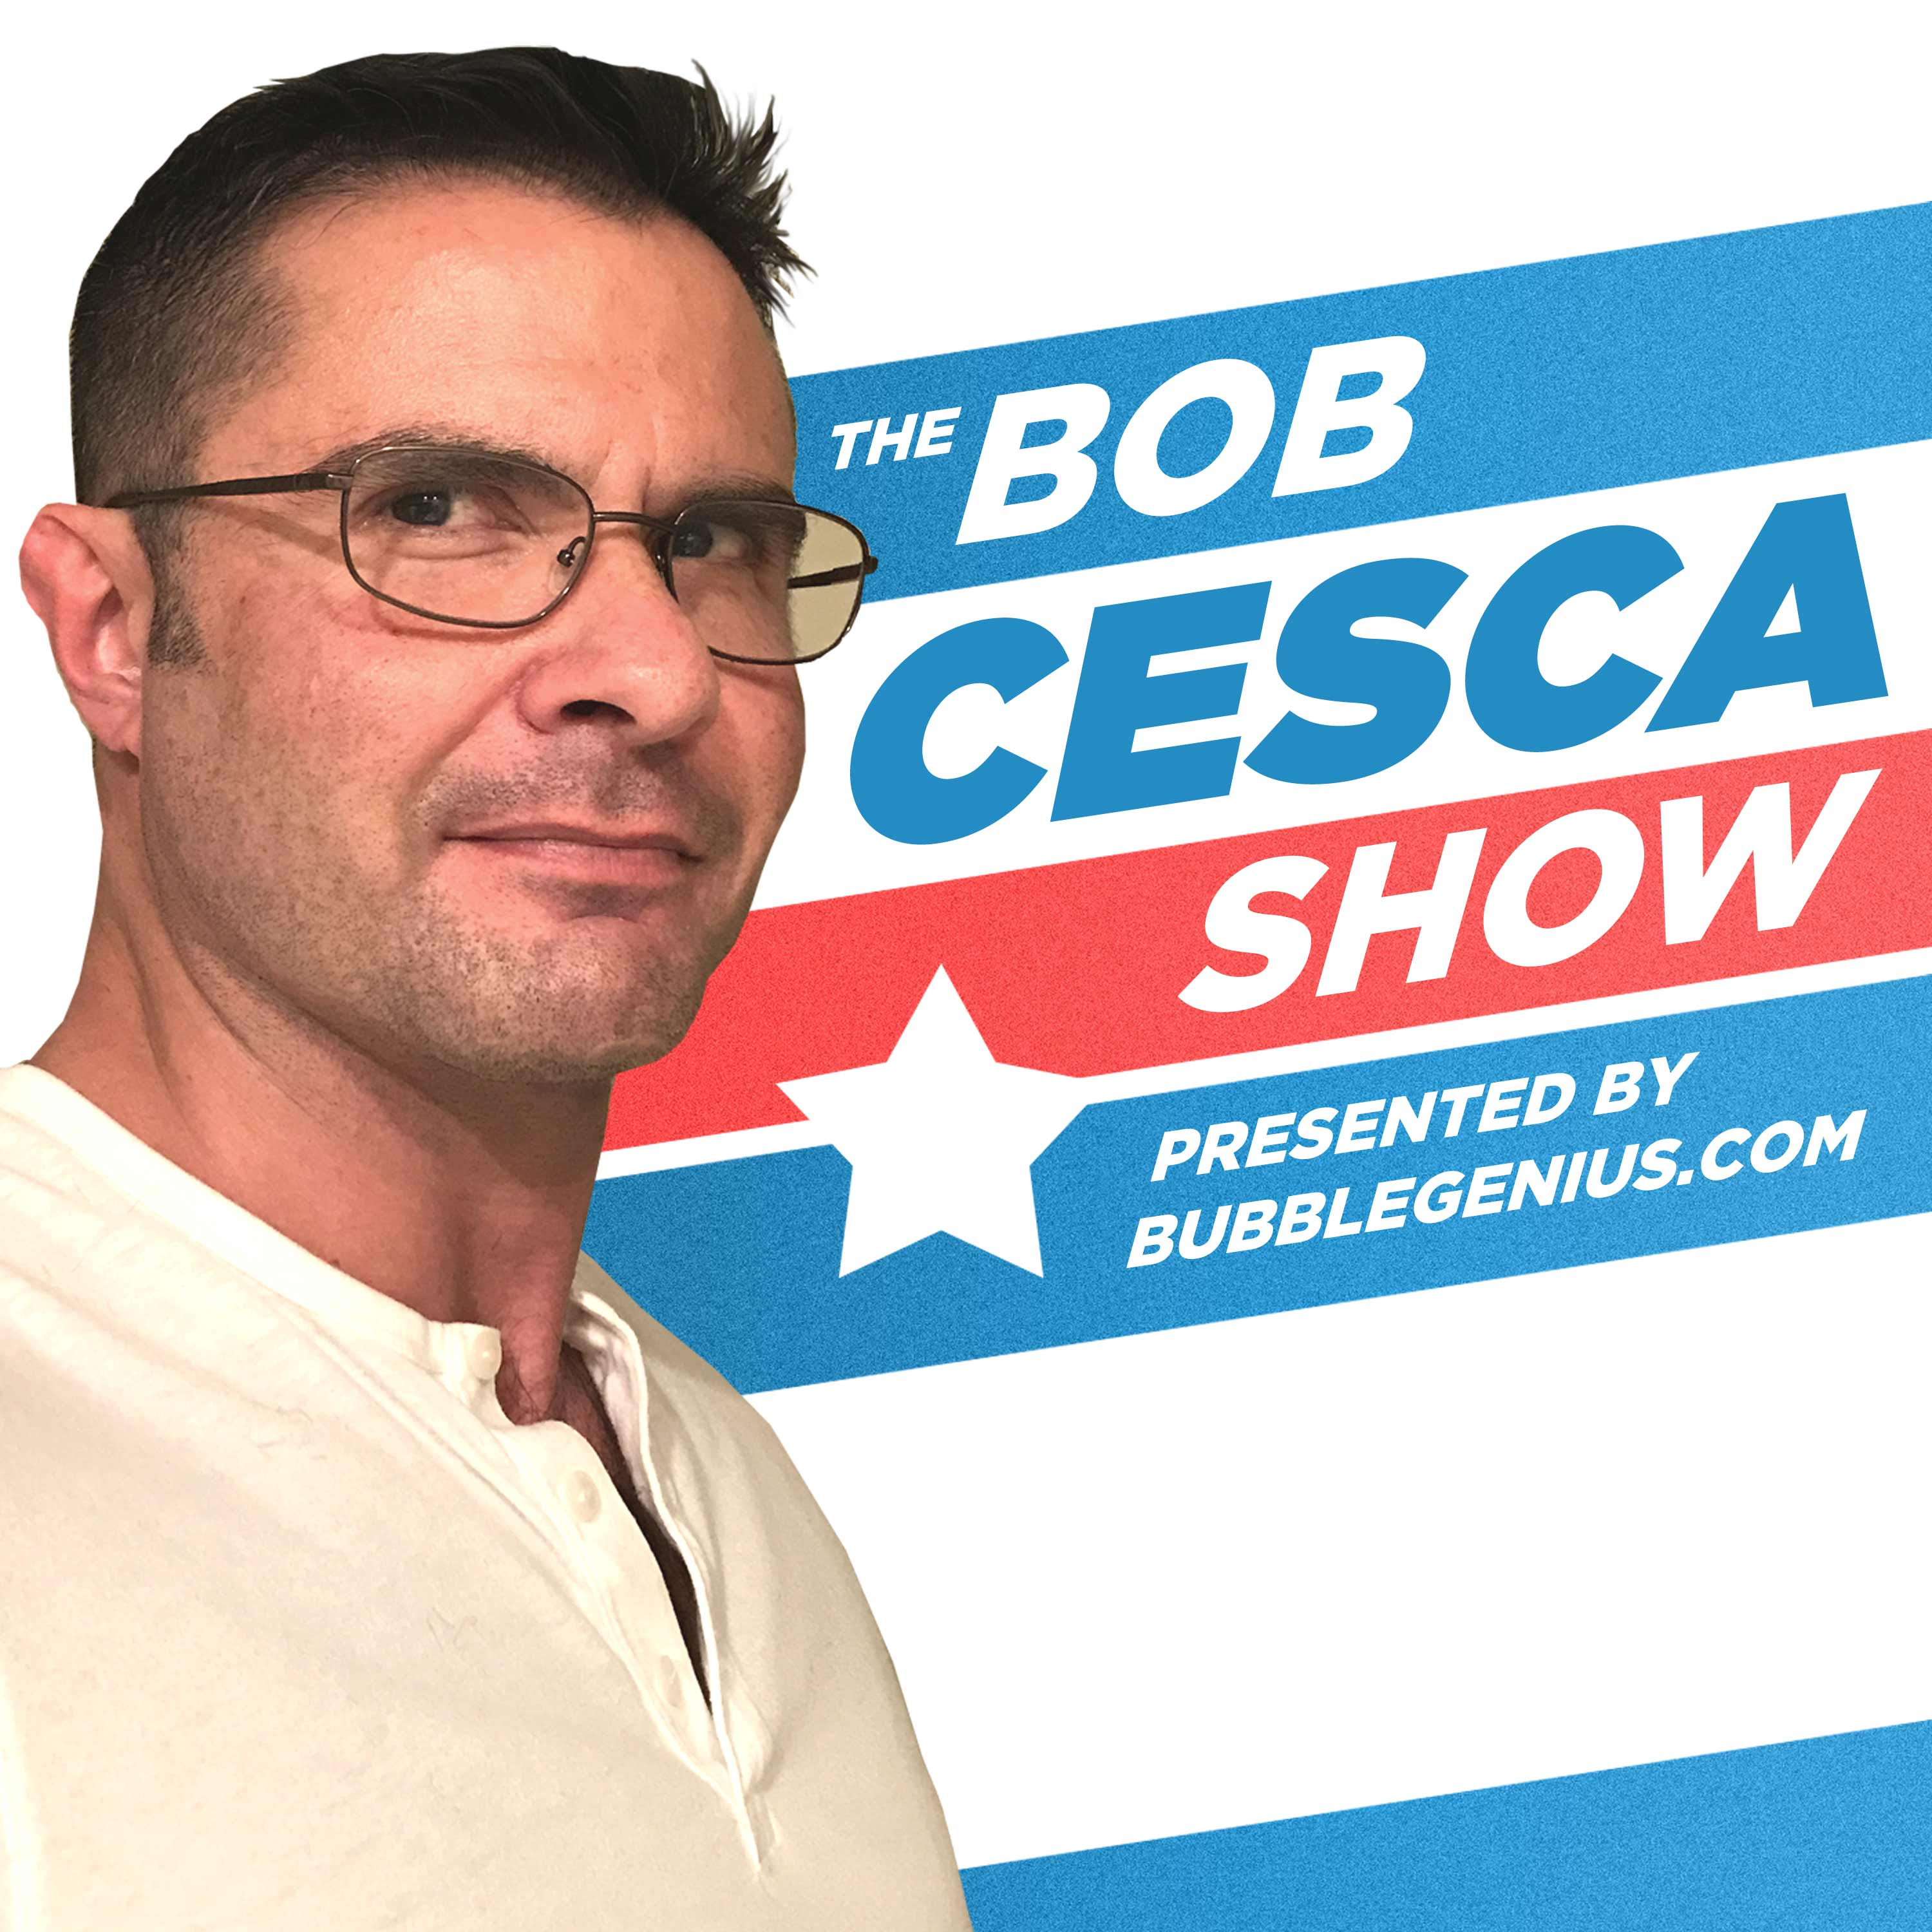 f4dad7f8517 The Bob Cesca Show presented by BubbleGenius.com by RELM ...